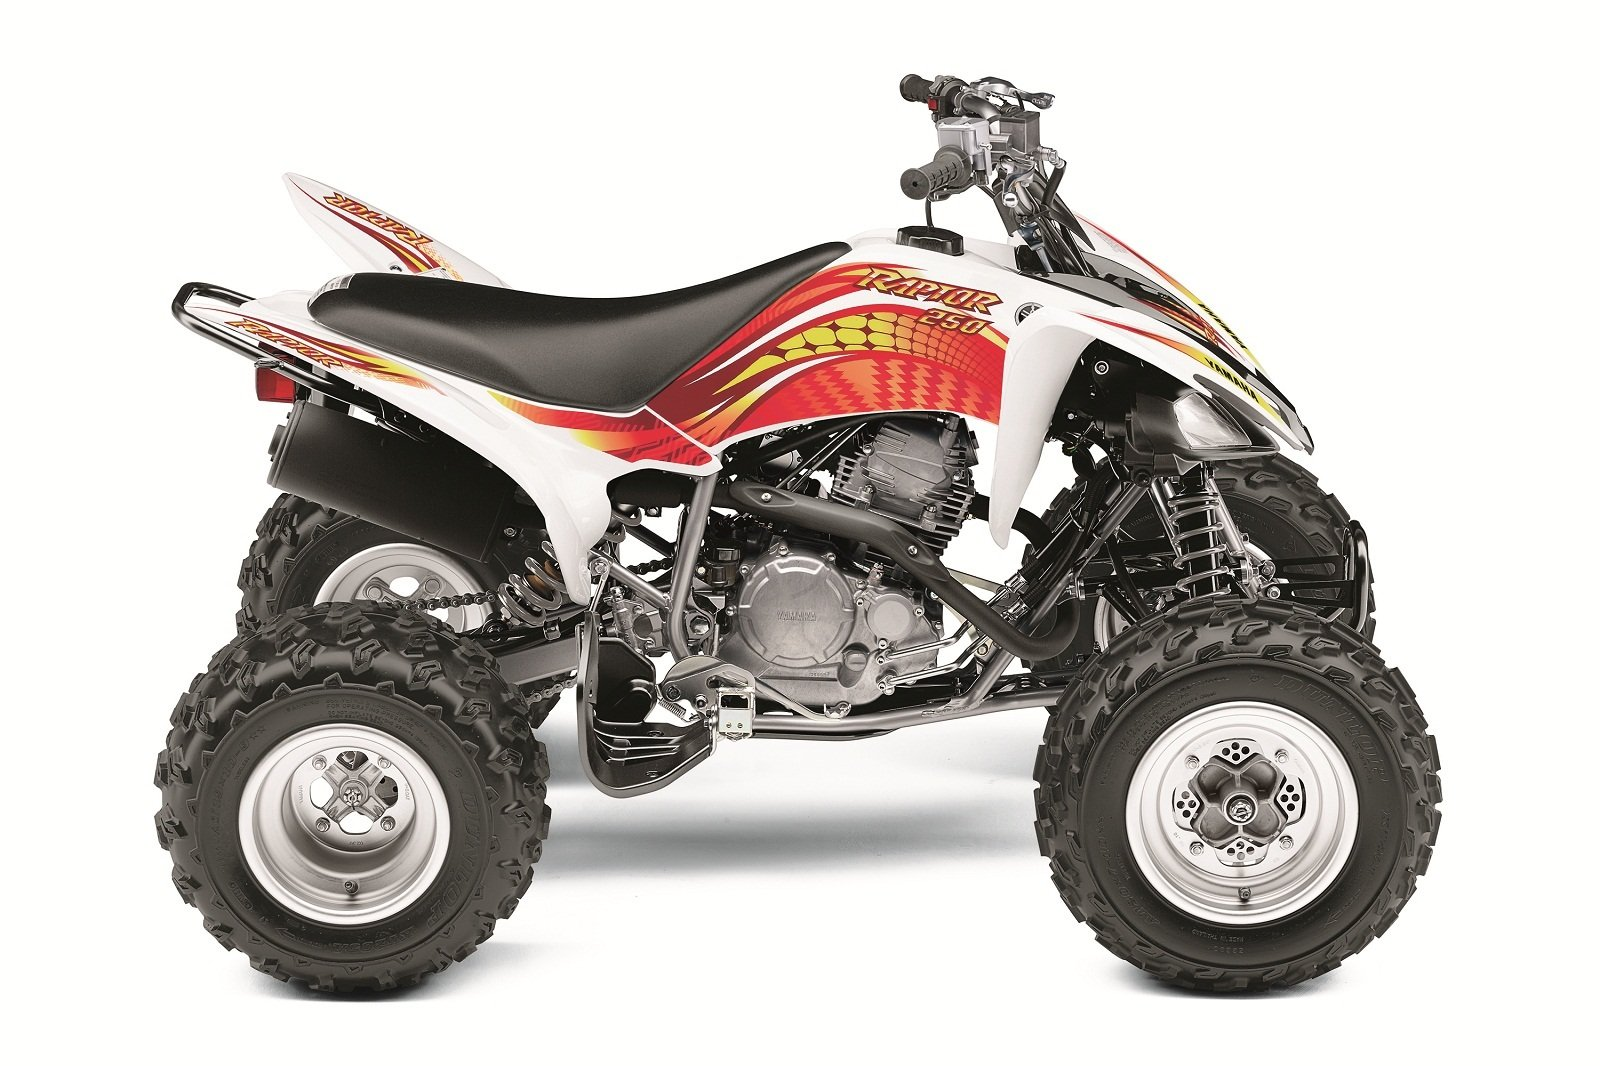 2012 yamaha raptor 250 picture 421247 motorcycle for Yamaha raptor 250 price